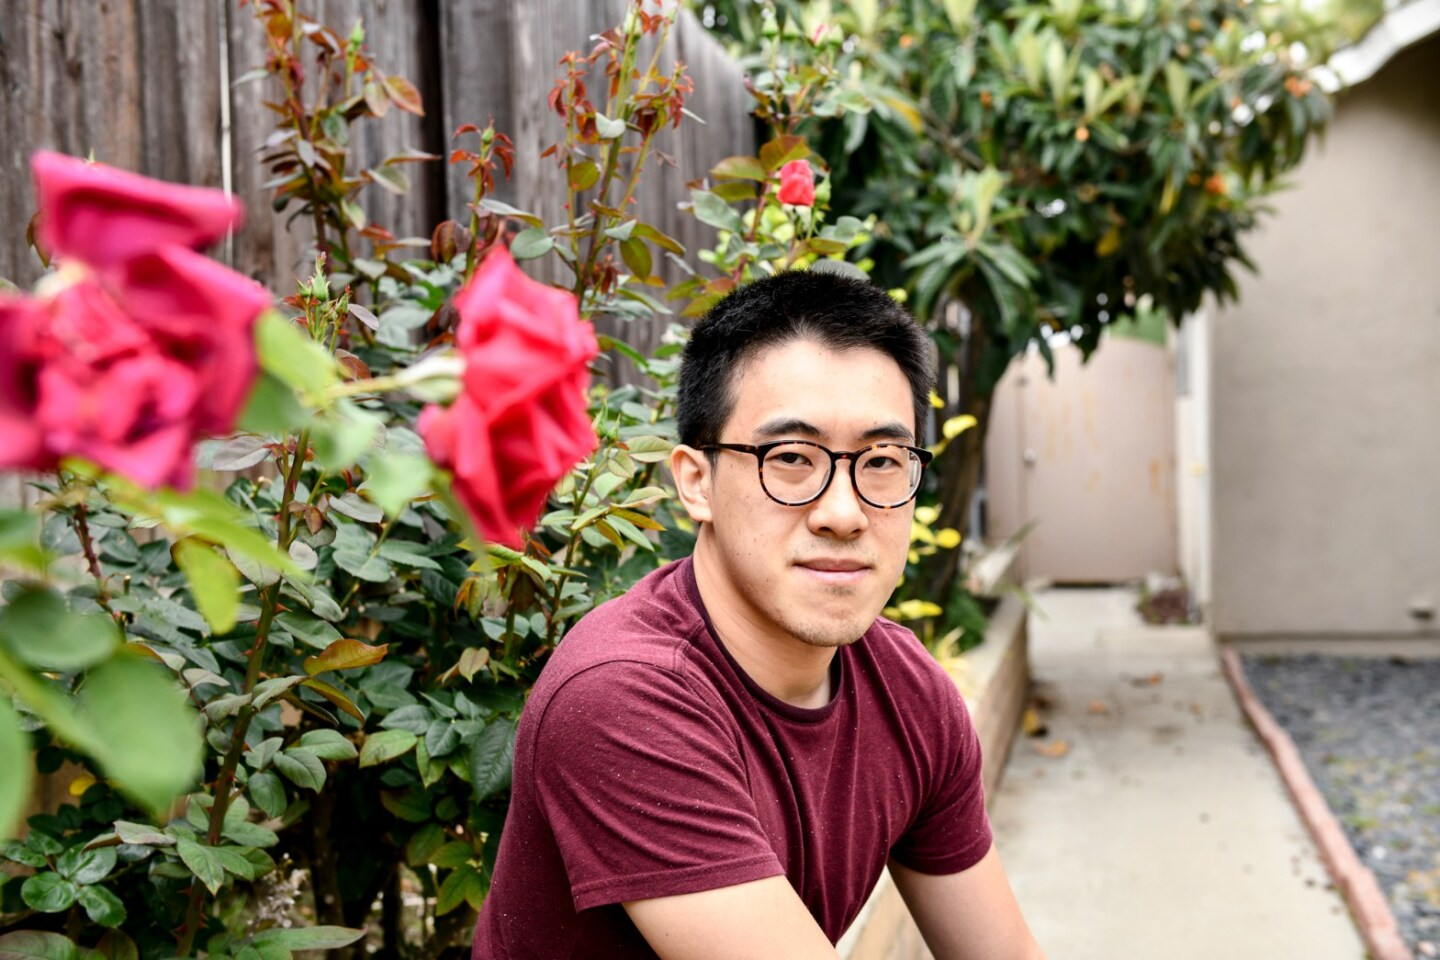 SF State graduate student Richard Lim poses for a portrait at his home in Rowland Heights on May 11, 2021.  He wears black glasses, a burgundy shirt and short black hair.